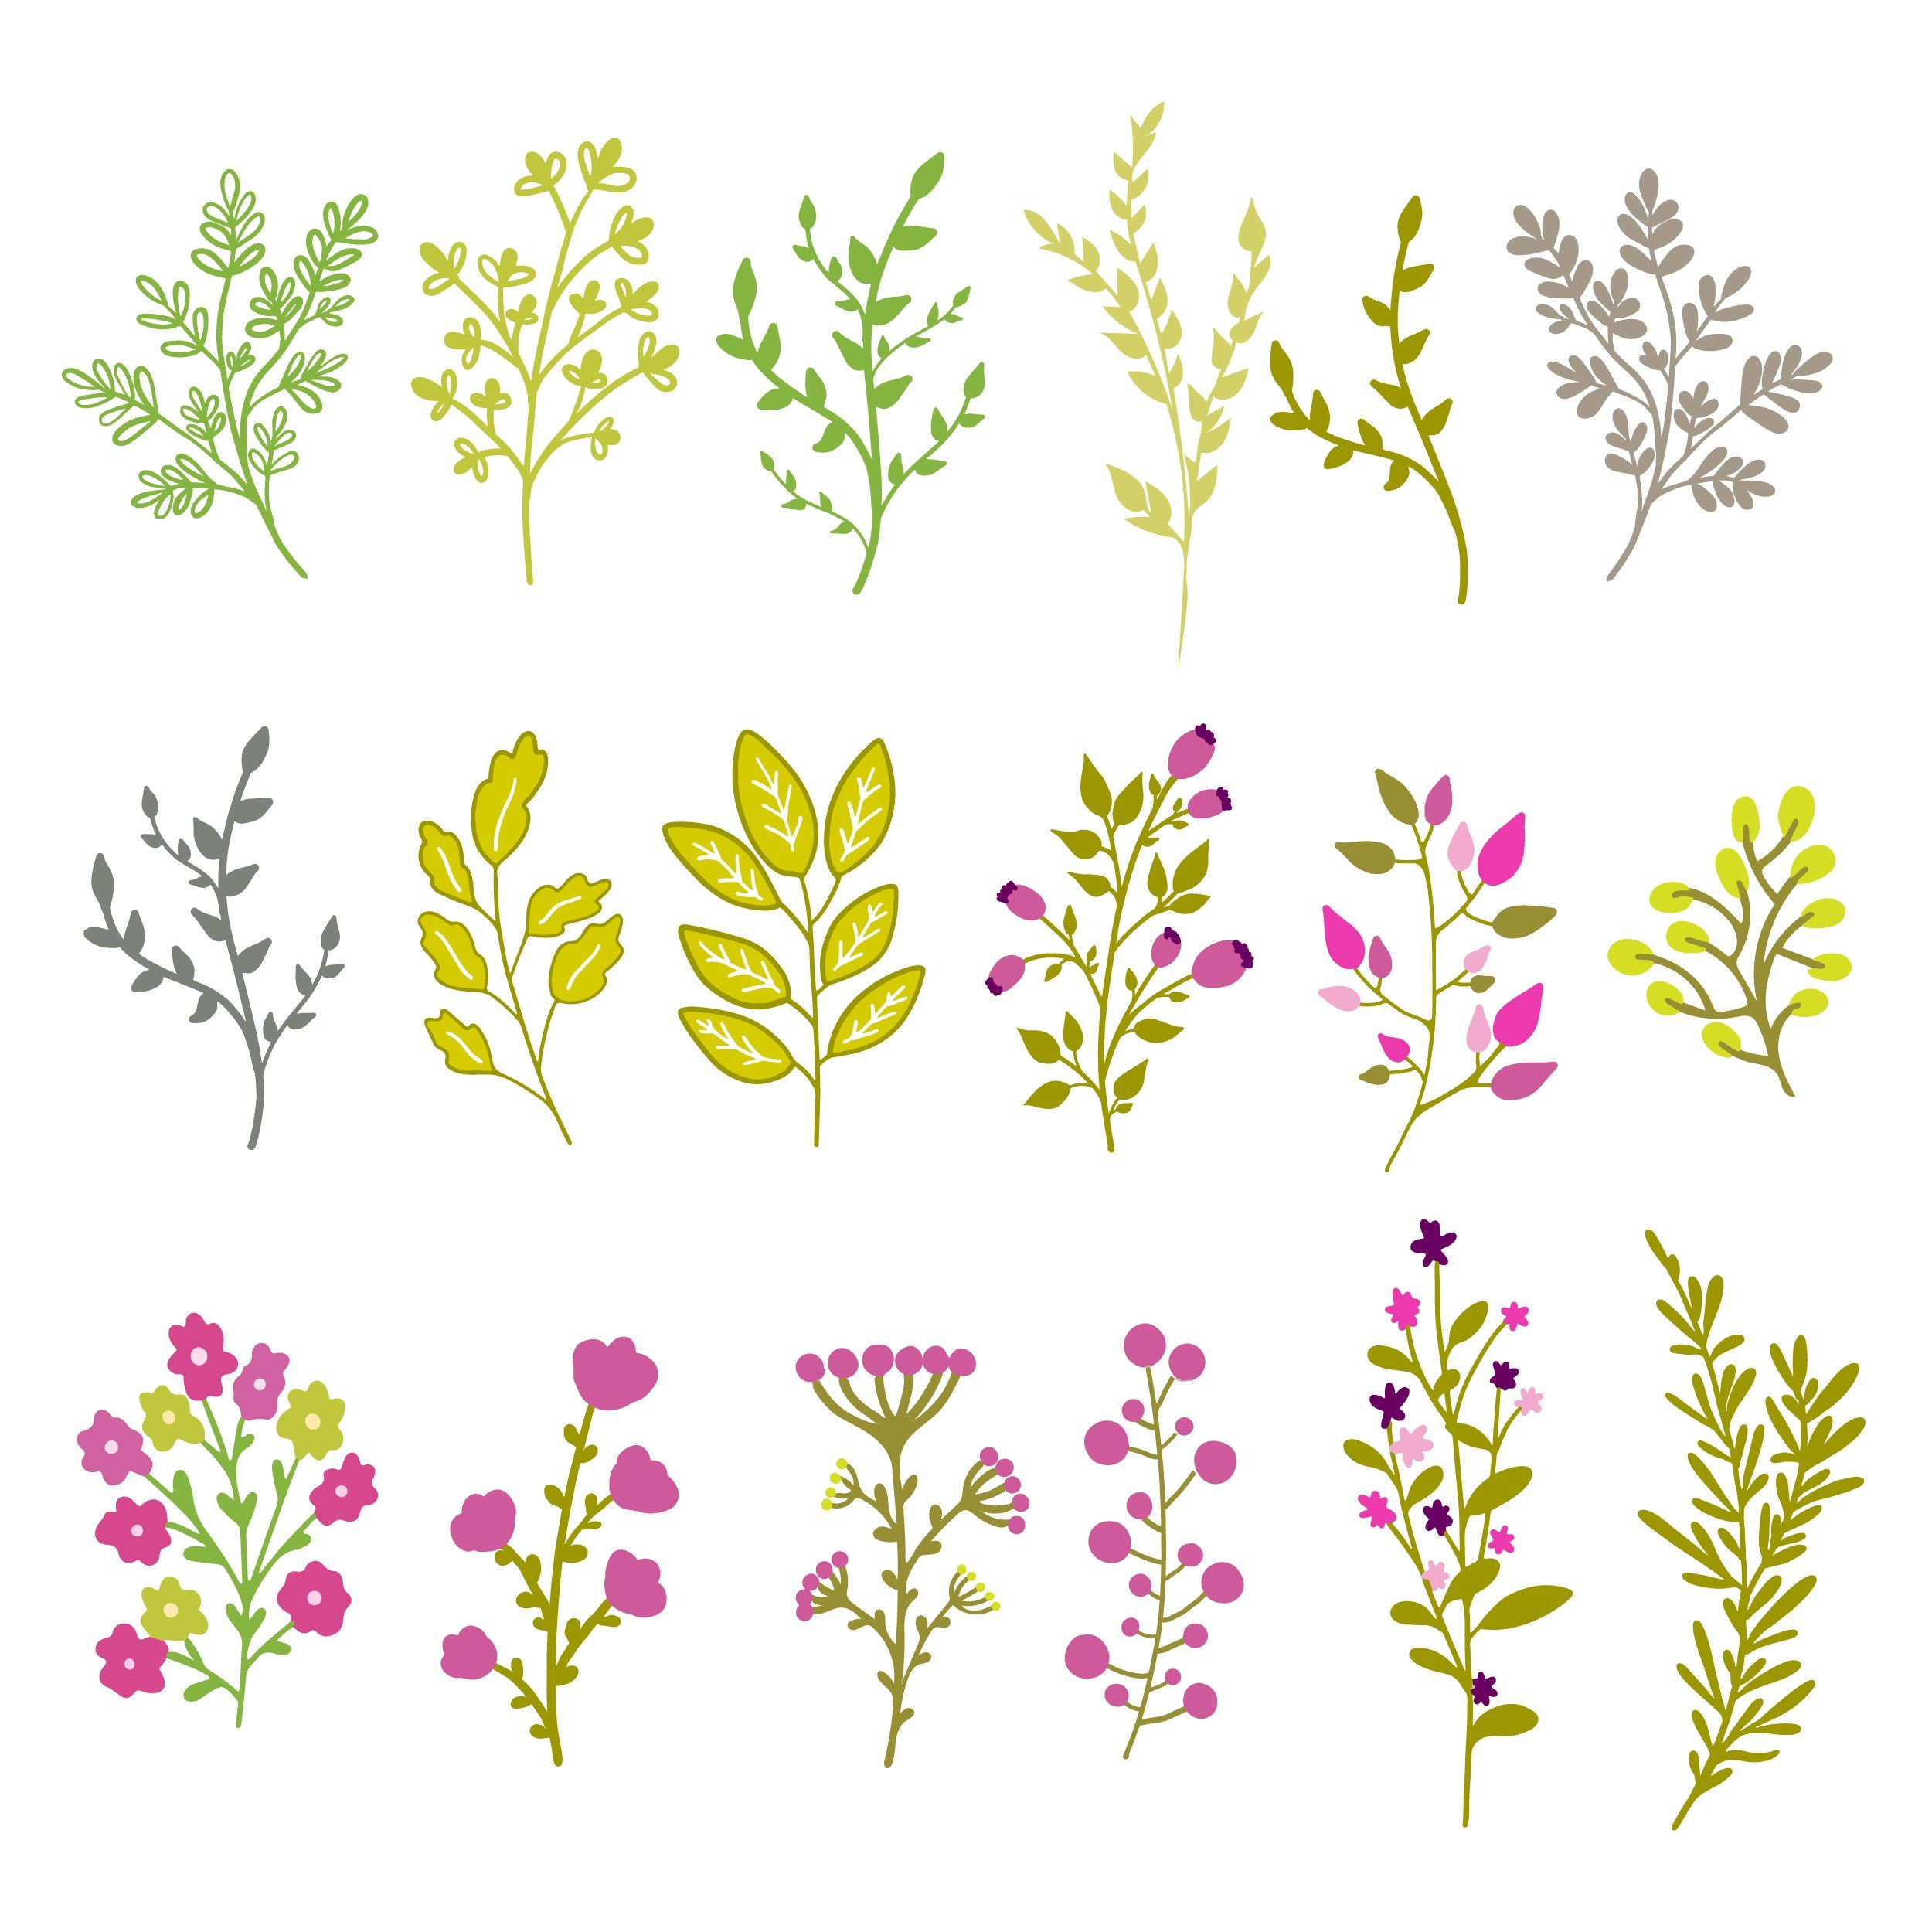 Floral illustrations, vector objects